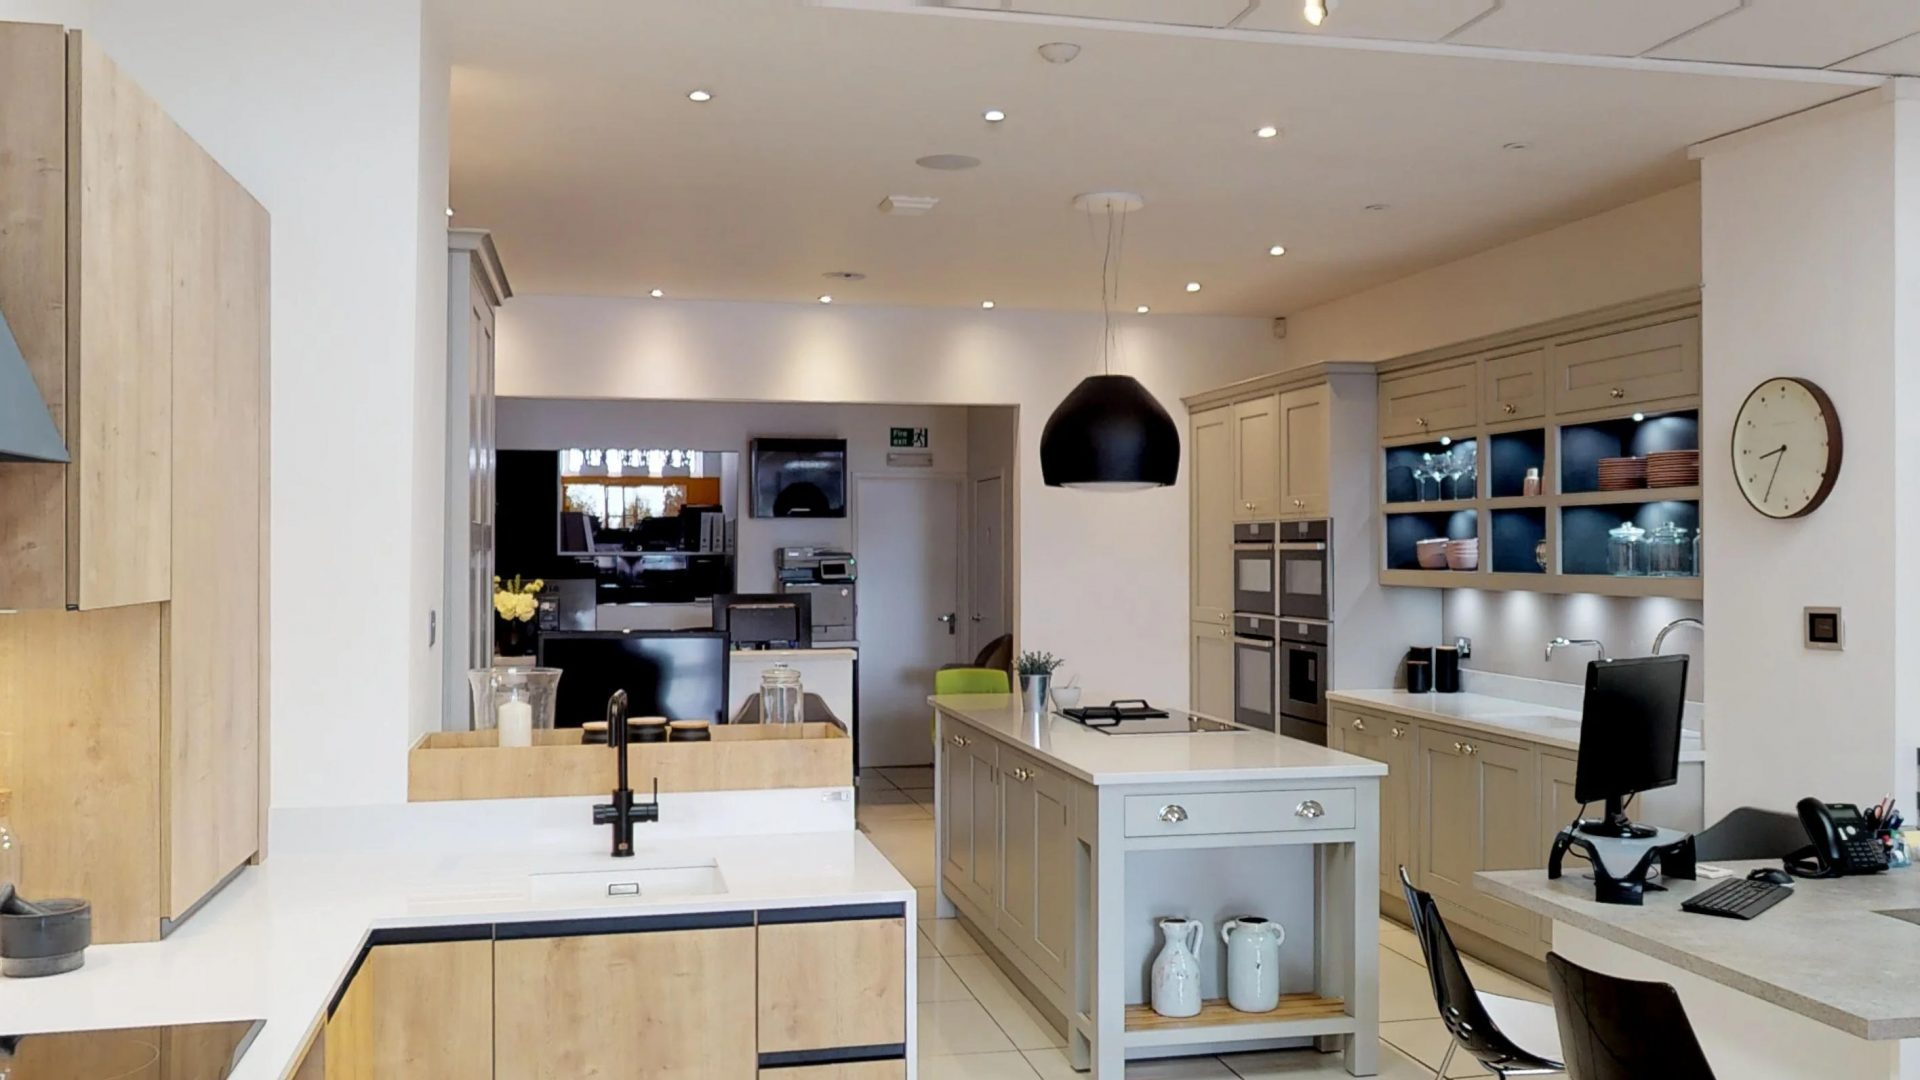 The-Kitchen-Partners-04292019_151210